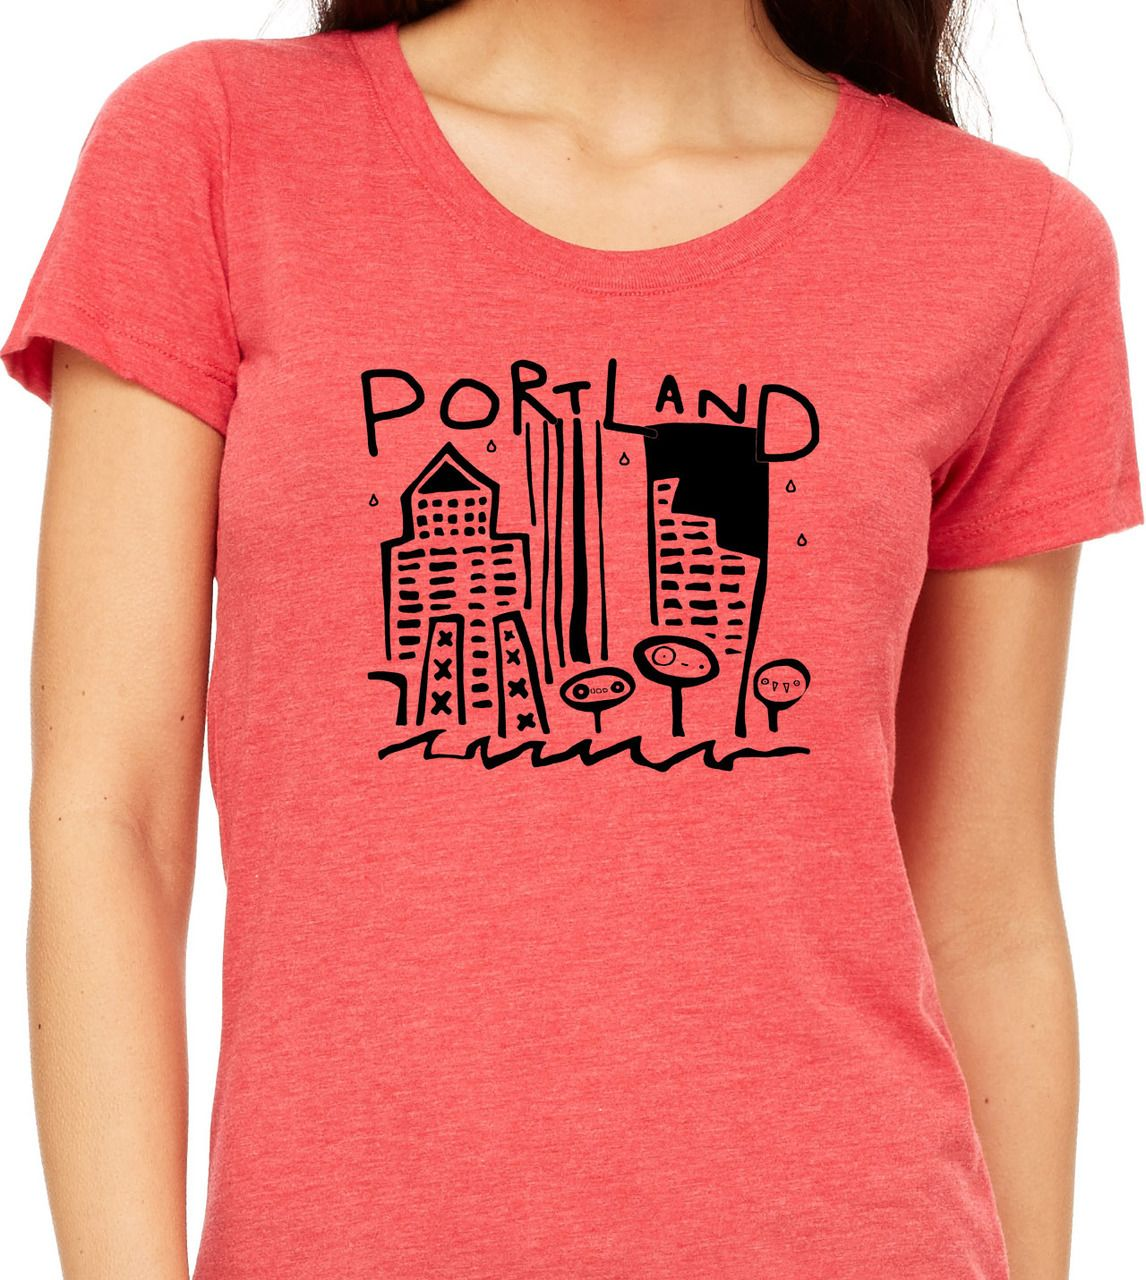 Portland Womens Triblend Tee (With images) Women